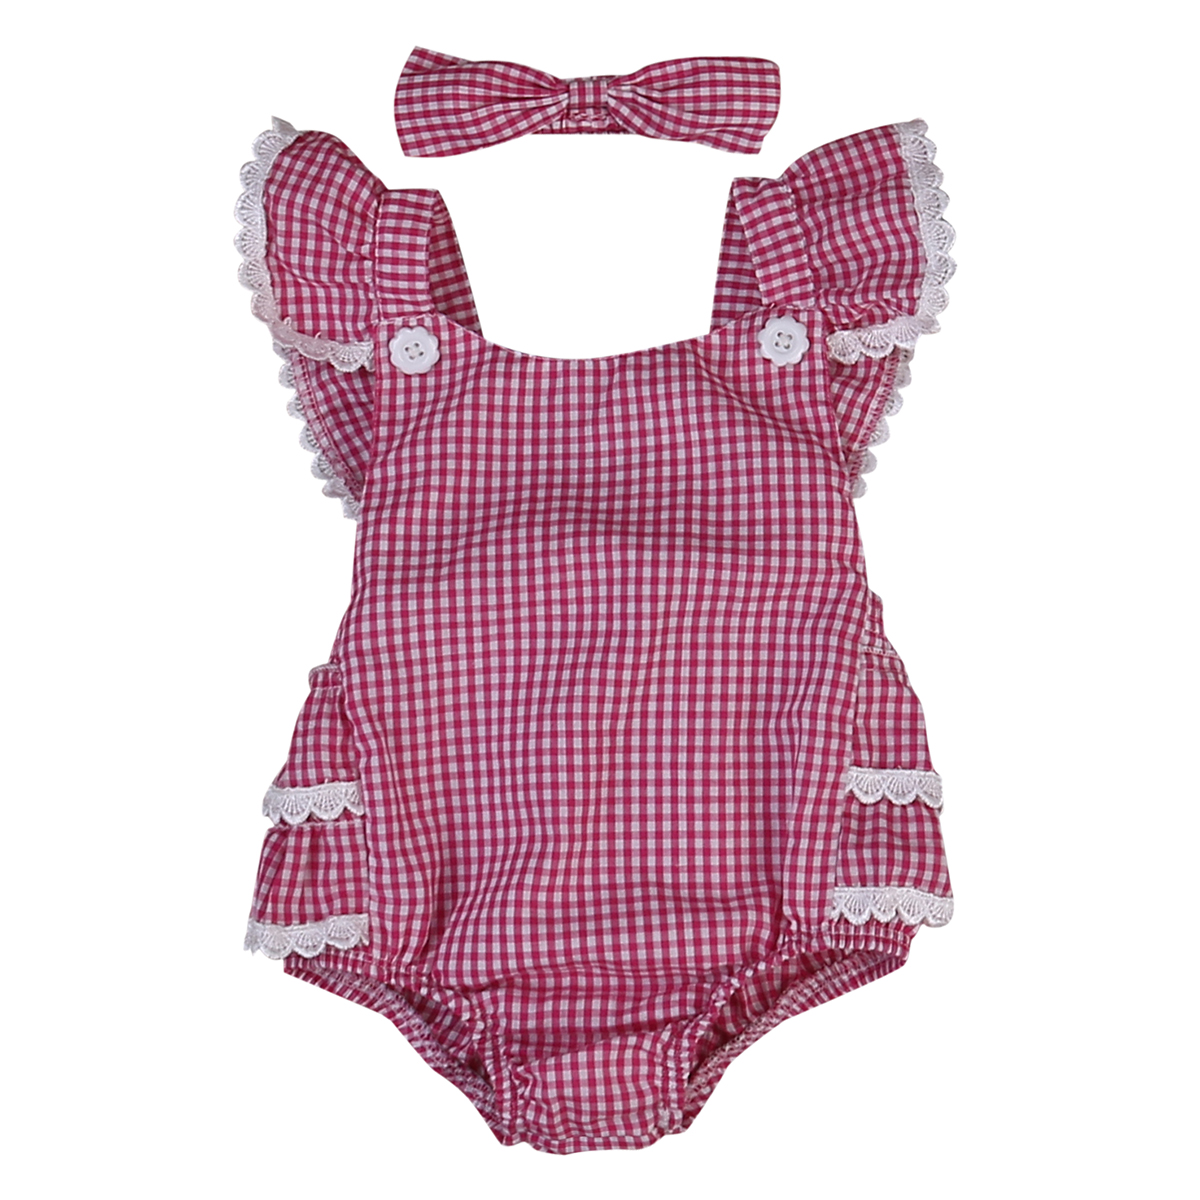 2017 Cute Newborn Baby Girl Clothes Red Plaid Ruffles Romper Skirted Baby Bodysuit +Headband 2PCS Outifts Sunsuit Clothing Set 2017 sequins mermaid newborn baby girl summer tutu skirted romper bodysuit jumpsuit headband 2pcs outfits kids clothing set